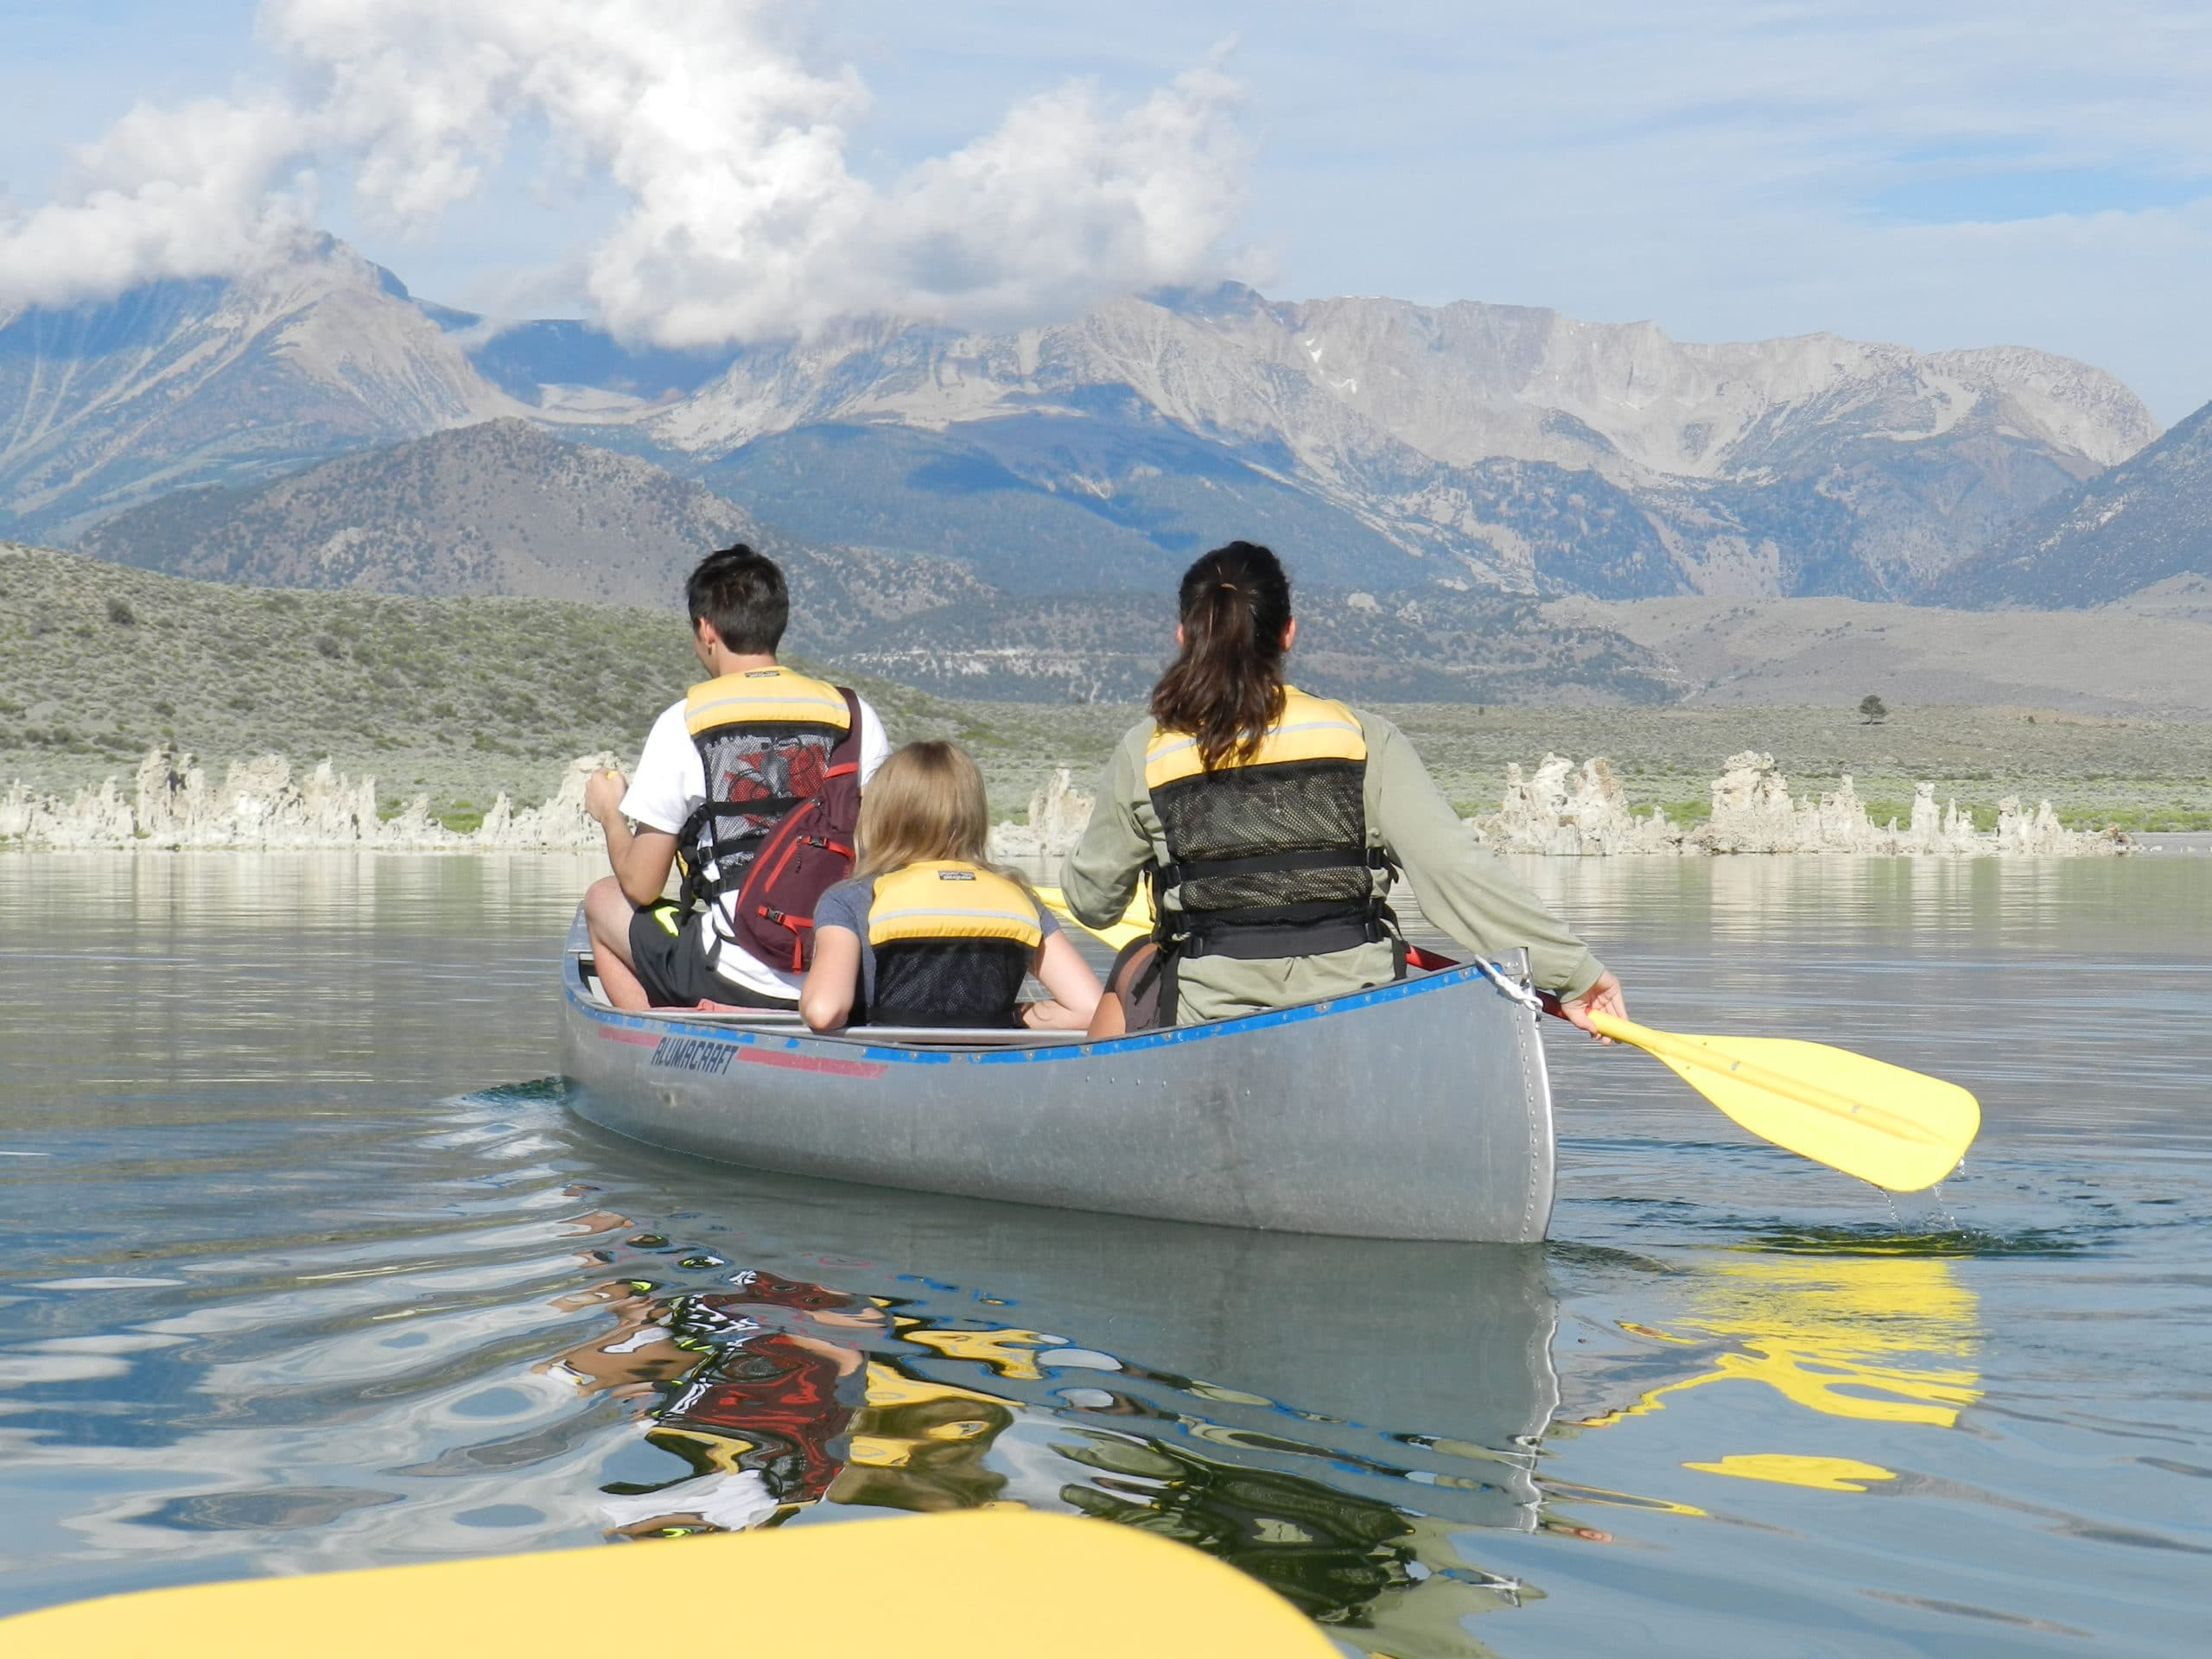 Three people sitting in a canoe paddling on Mono Lake in the bright sun moving over glassy water towards a grove of tufa towers with the tall Sierra Nevada in the distance.